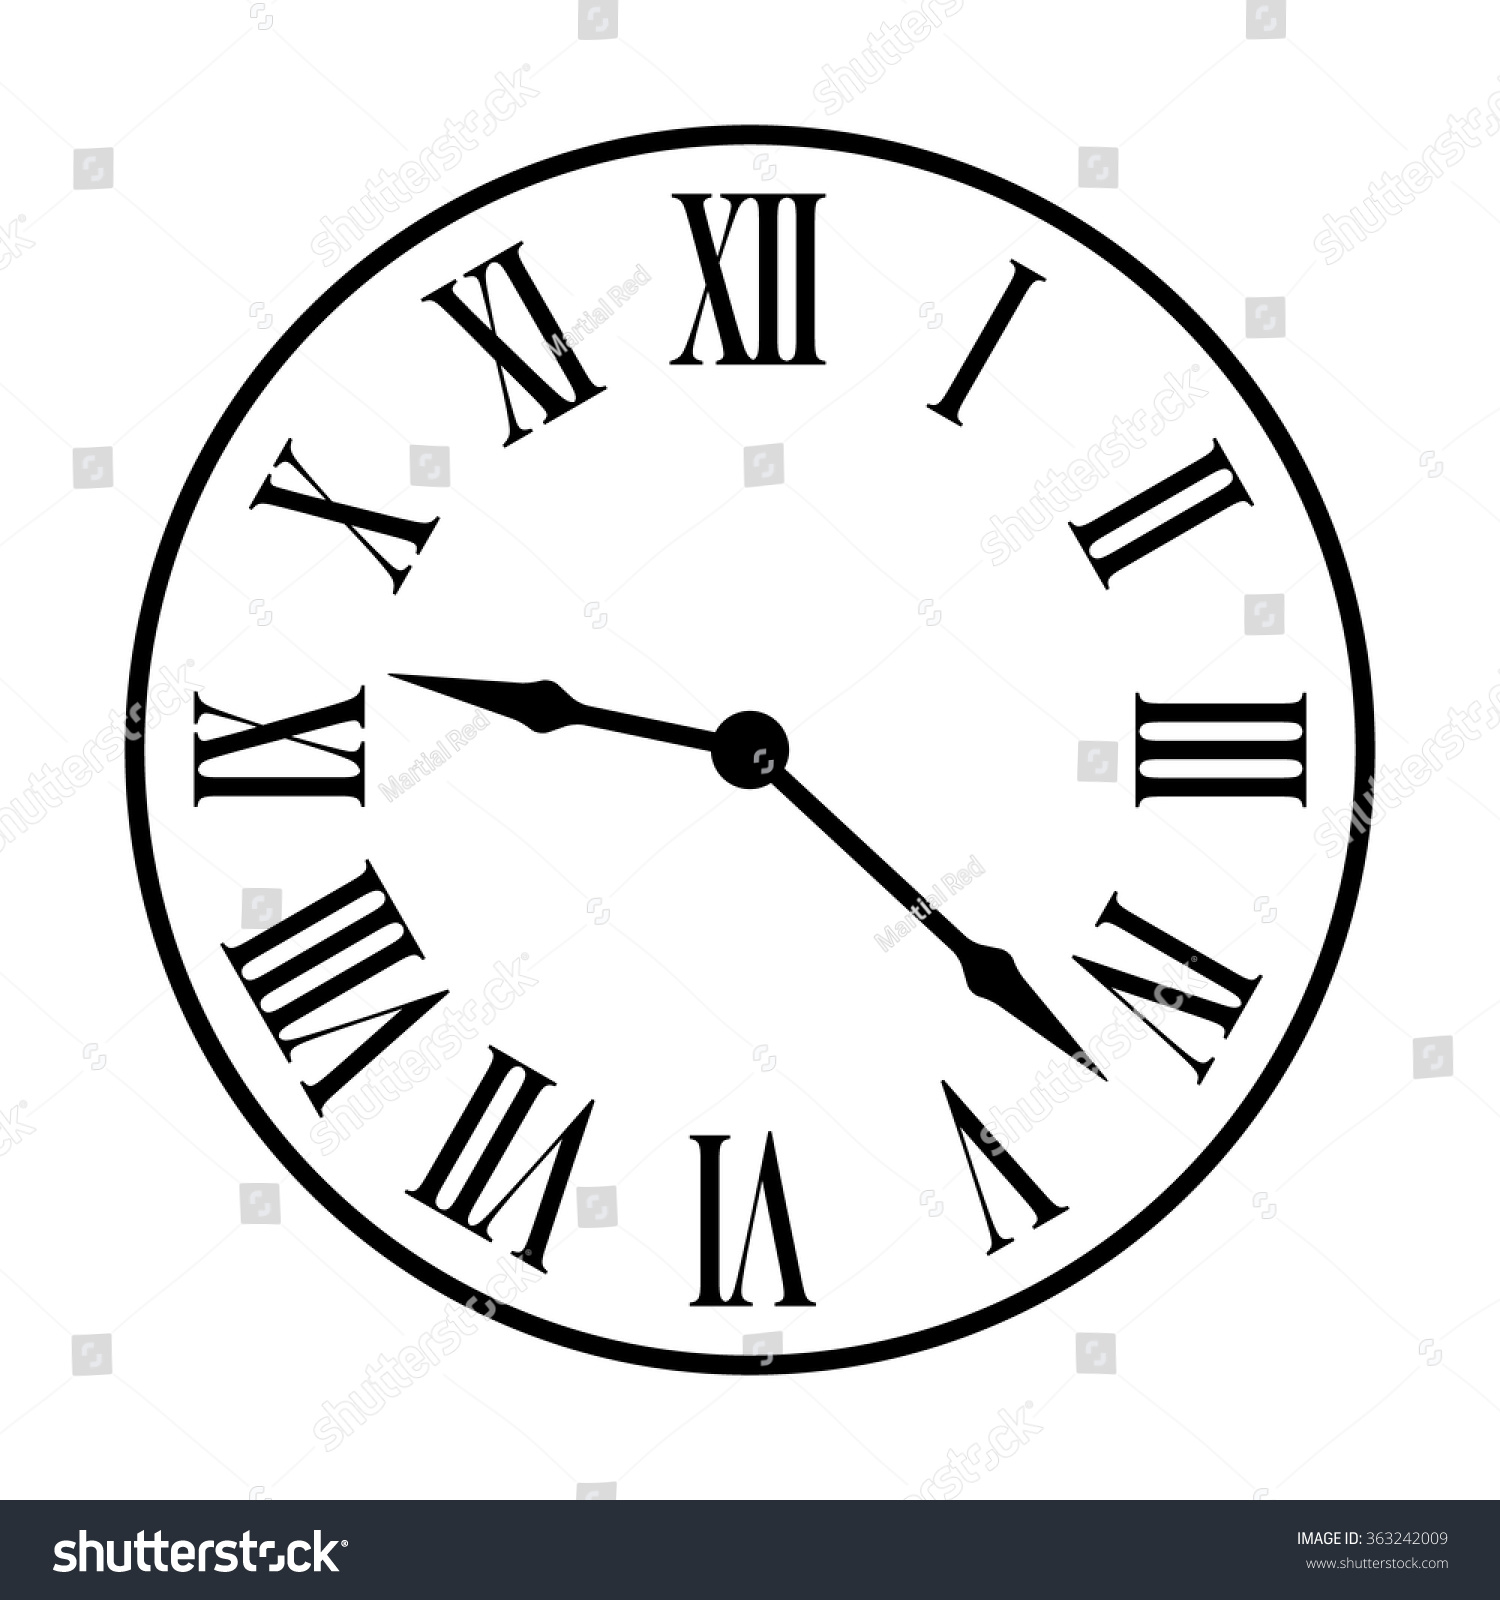 Line Drawing Of Clock Face : Old fashion vintage clock face line art icon for apps and